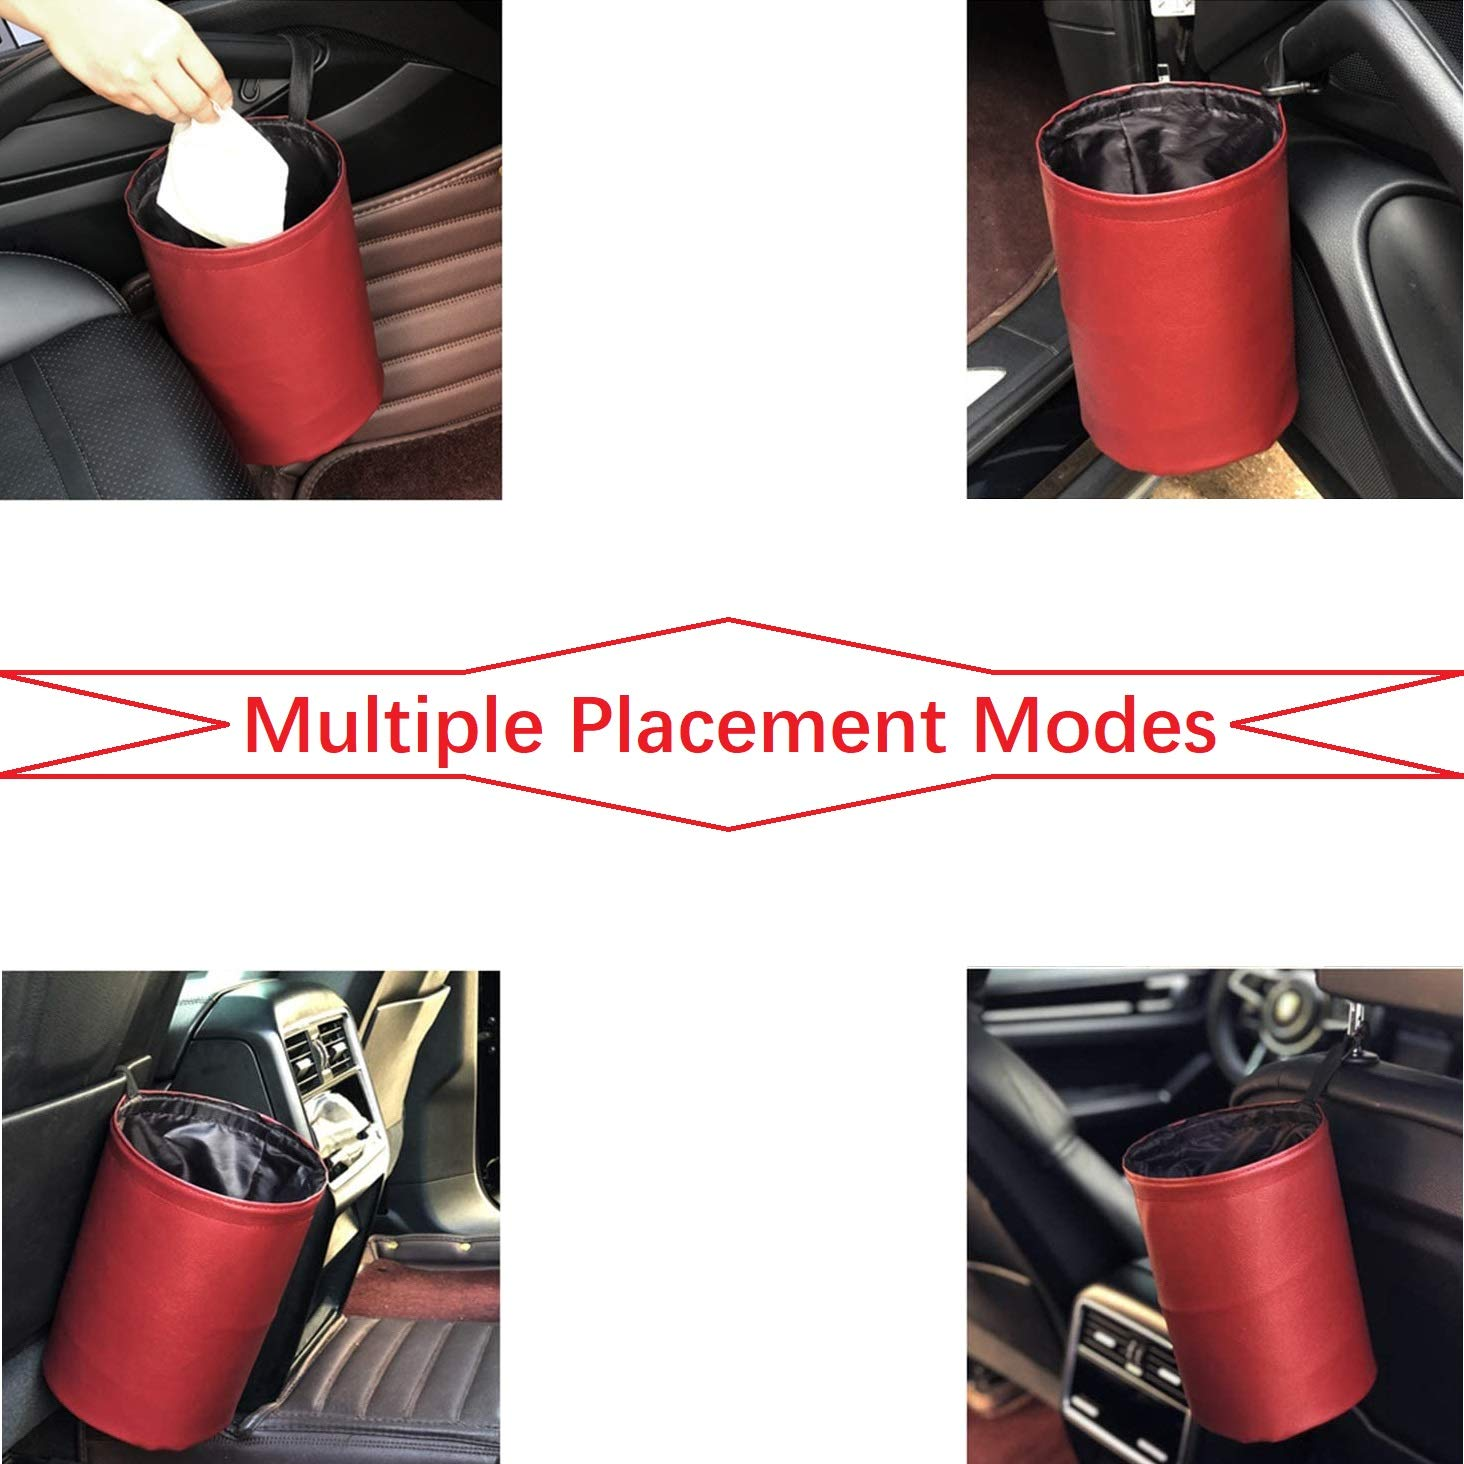 Portable Garbage Bin Storage Organizer Hanging Bag Use in Auto Home Office Universal Traveling Portable Car Garbage Can,Collapsible Pop-up Leather Water Proof Bag Car Trash Can Grey